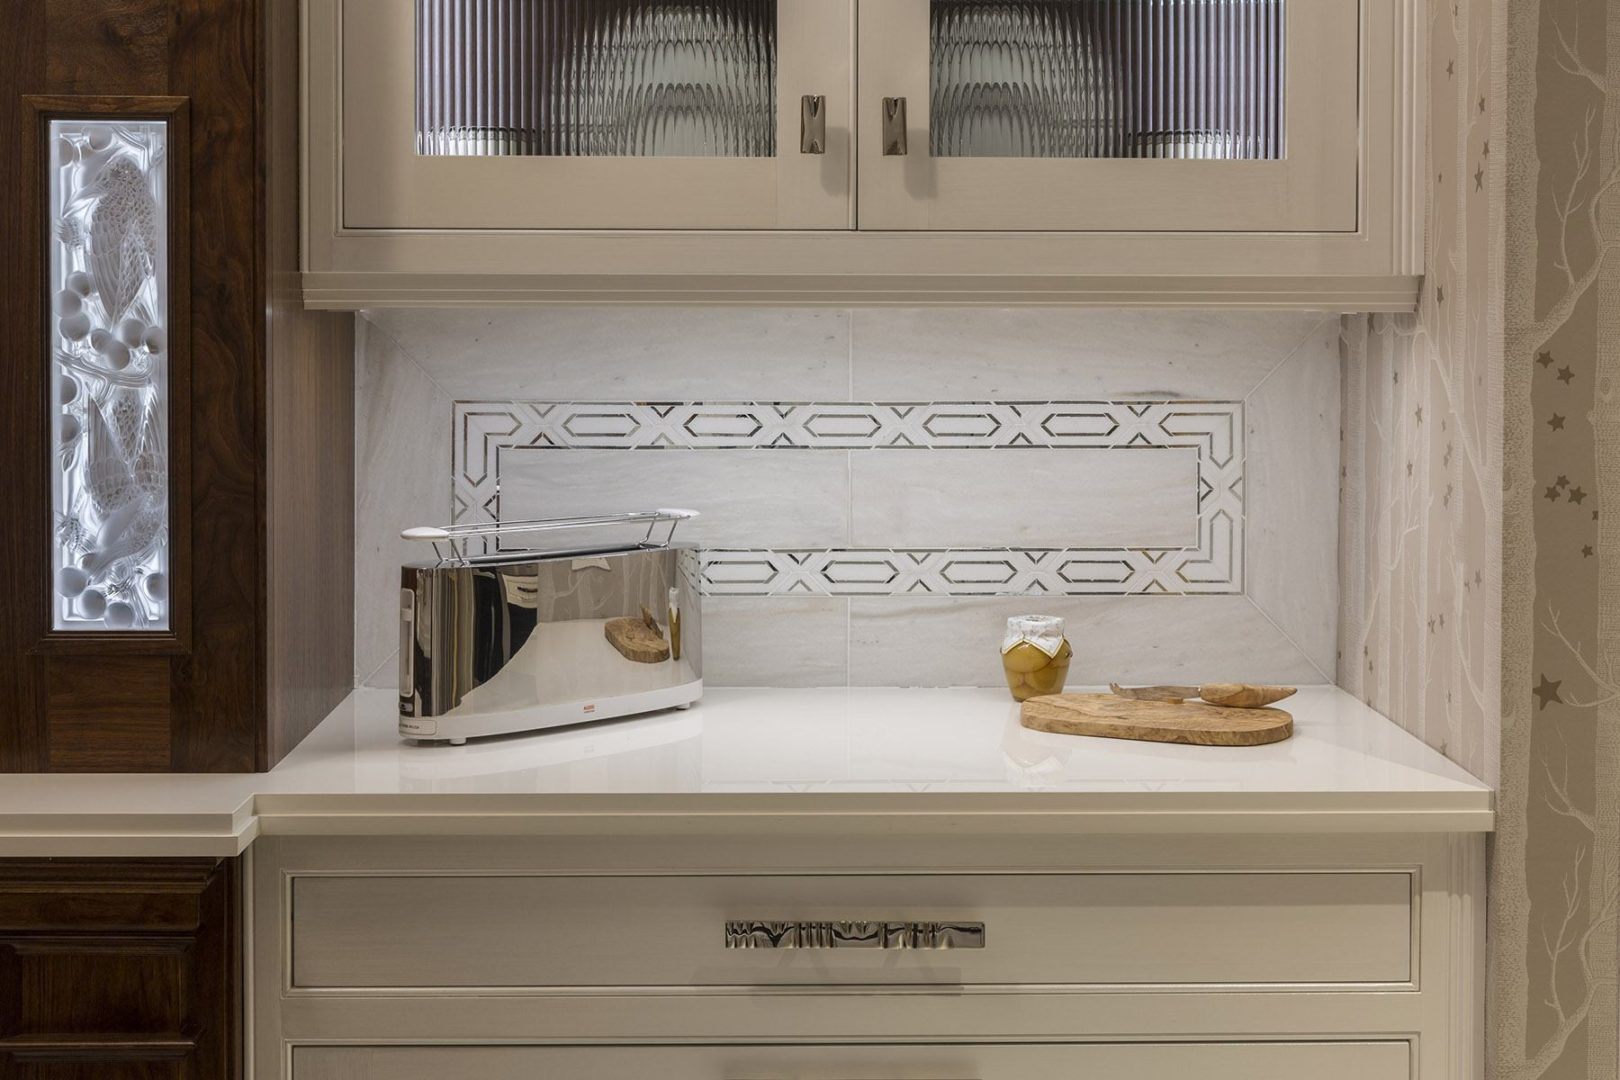 AKDO's White Haze marble and Allure radiance silver mirror border create sophisticated backsplash alongside warm wood cabinetry by Clive Christian and genuine Lalique crystal backlit inset panels.